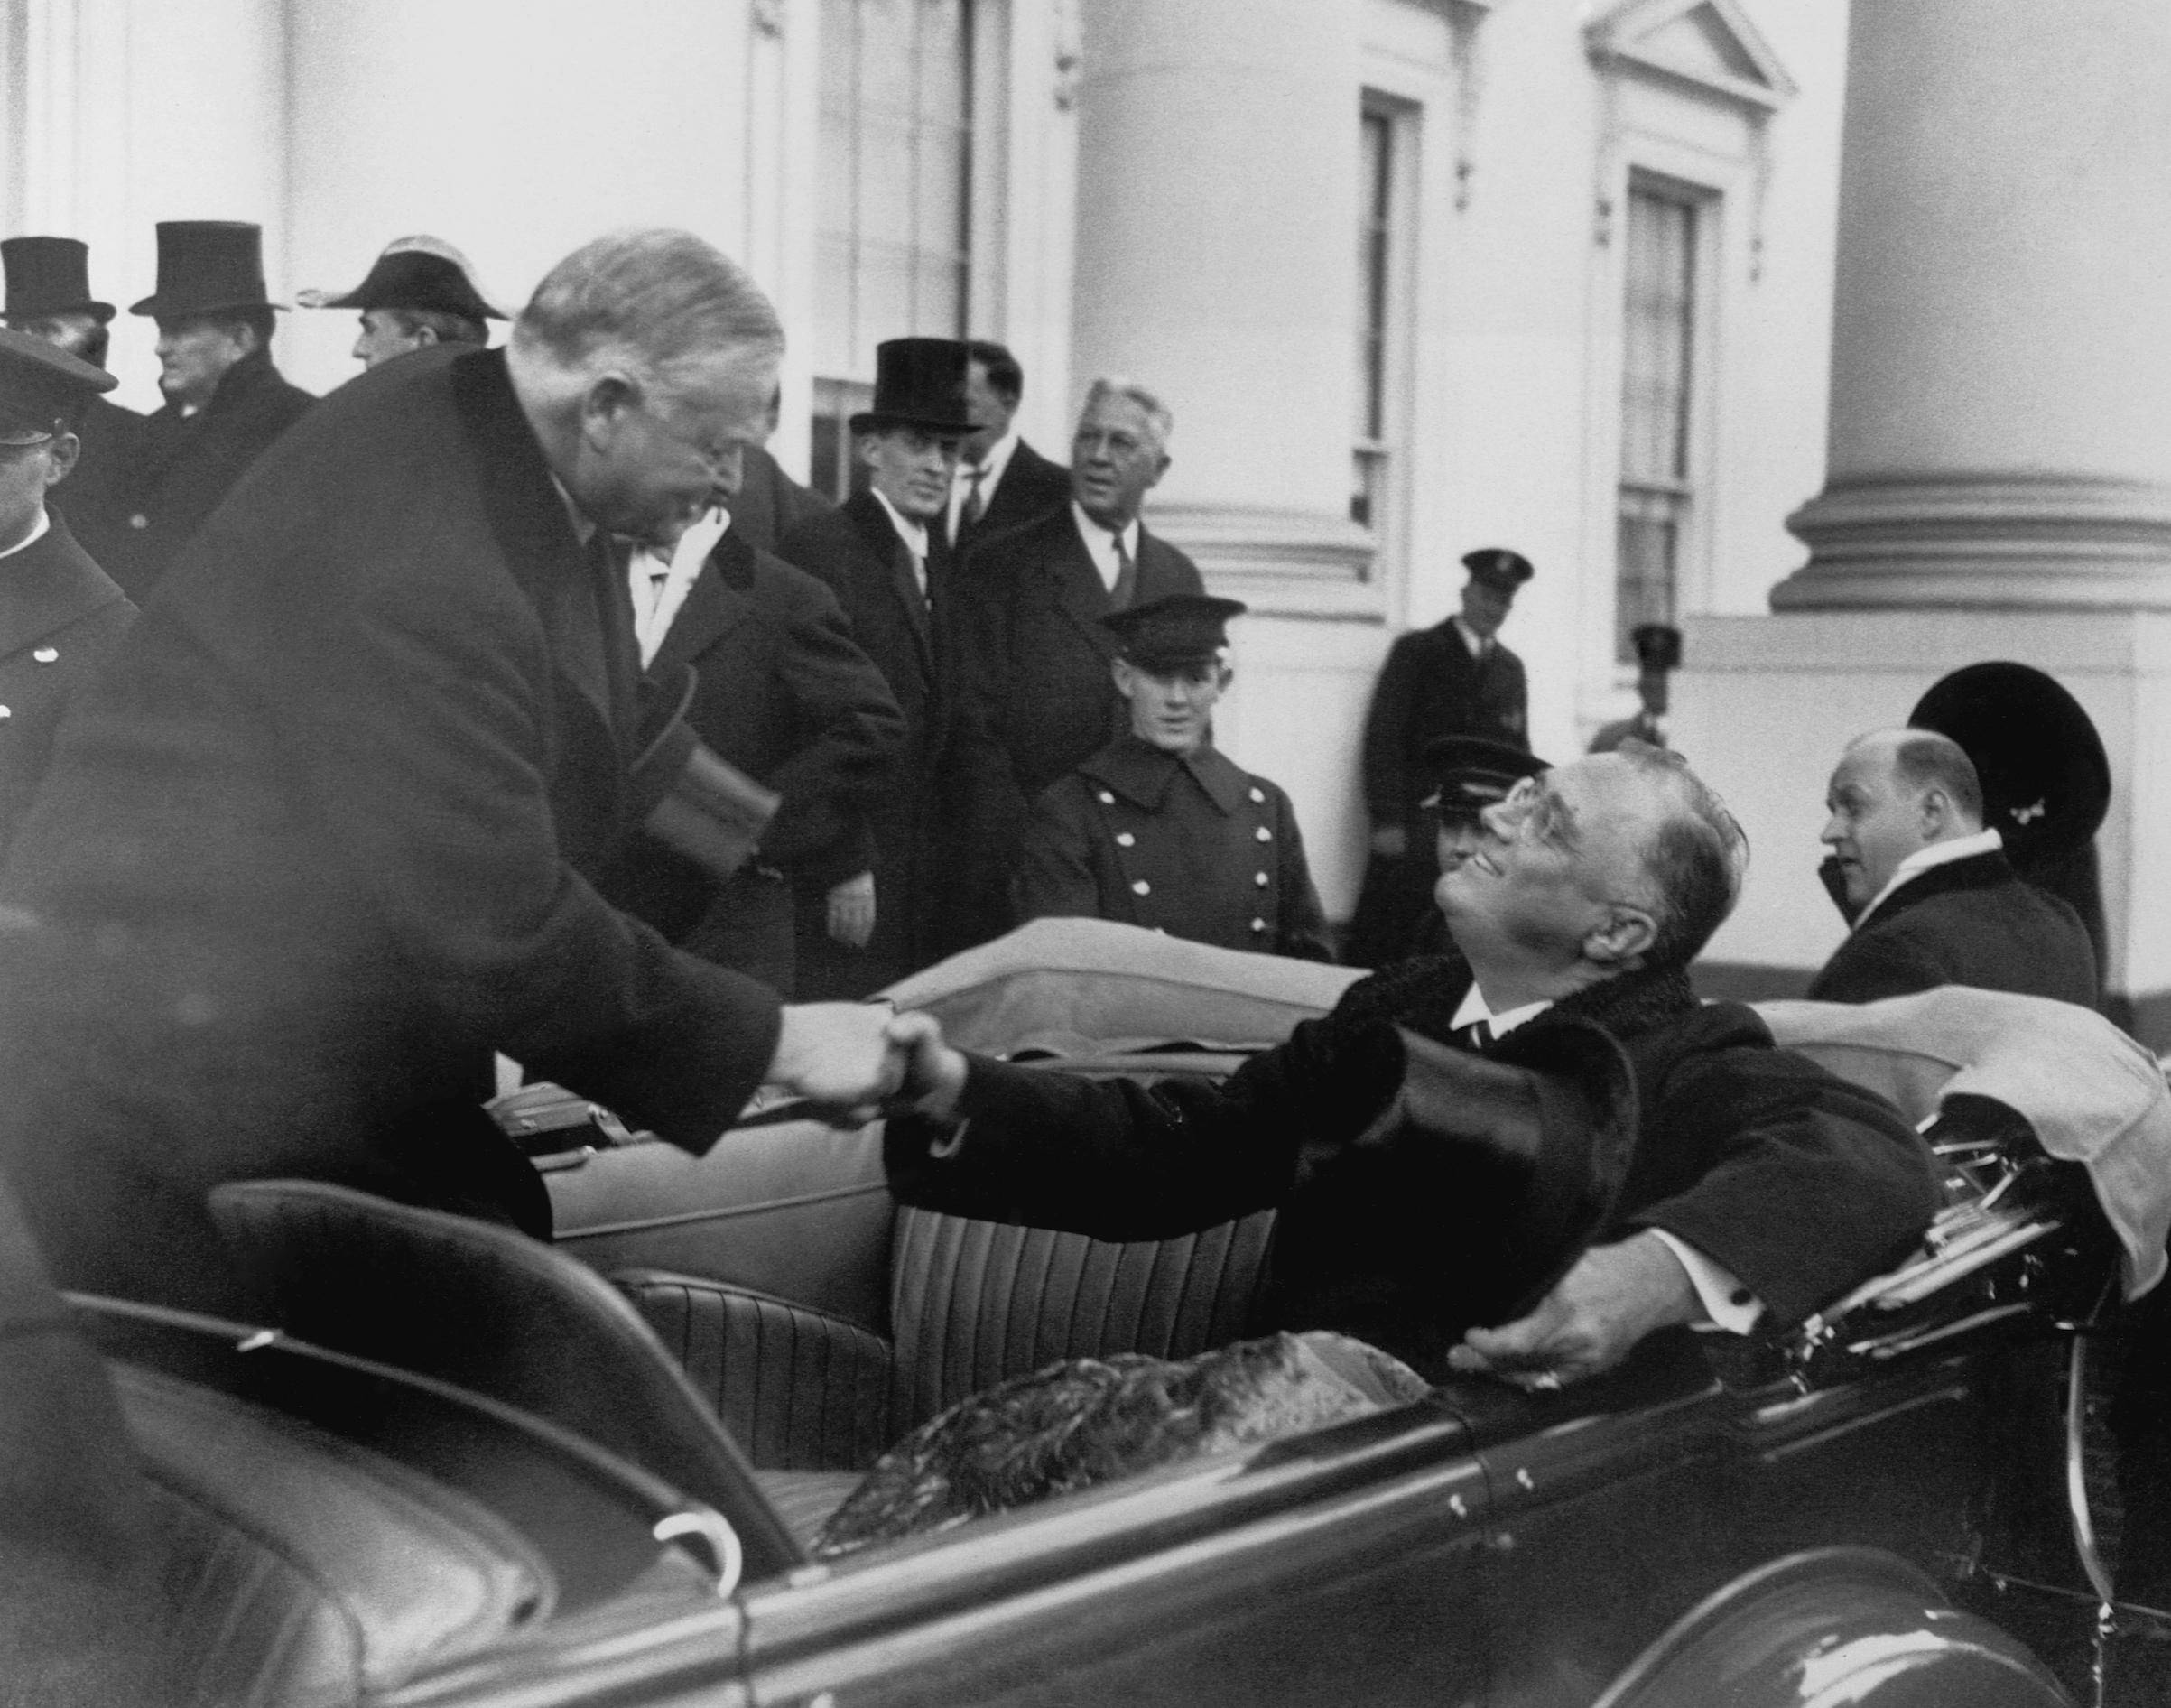 Outgoing President Herbert Hoover shakes the hand of incoming Franklin Roosevelt after Roosevelt's inauguration